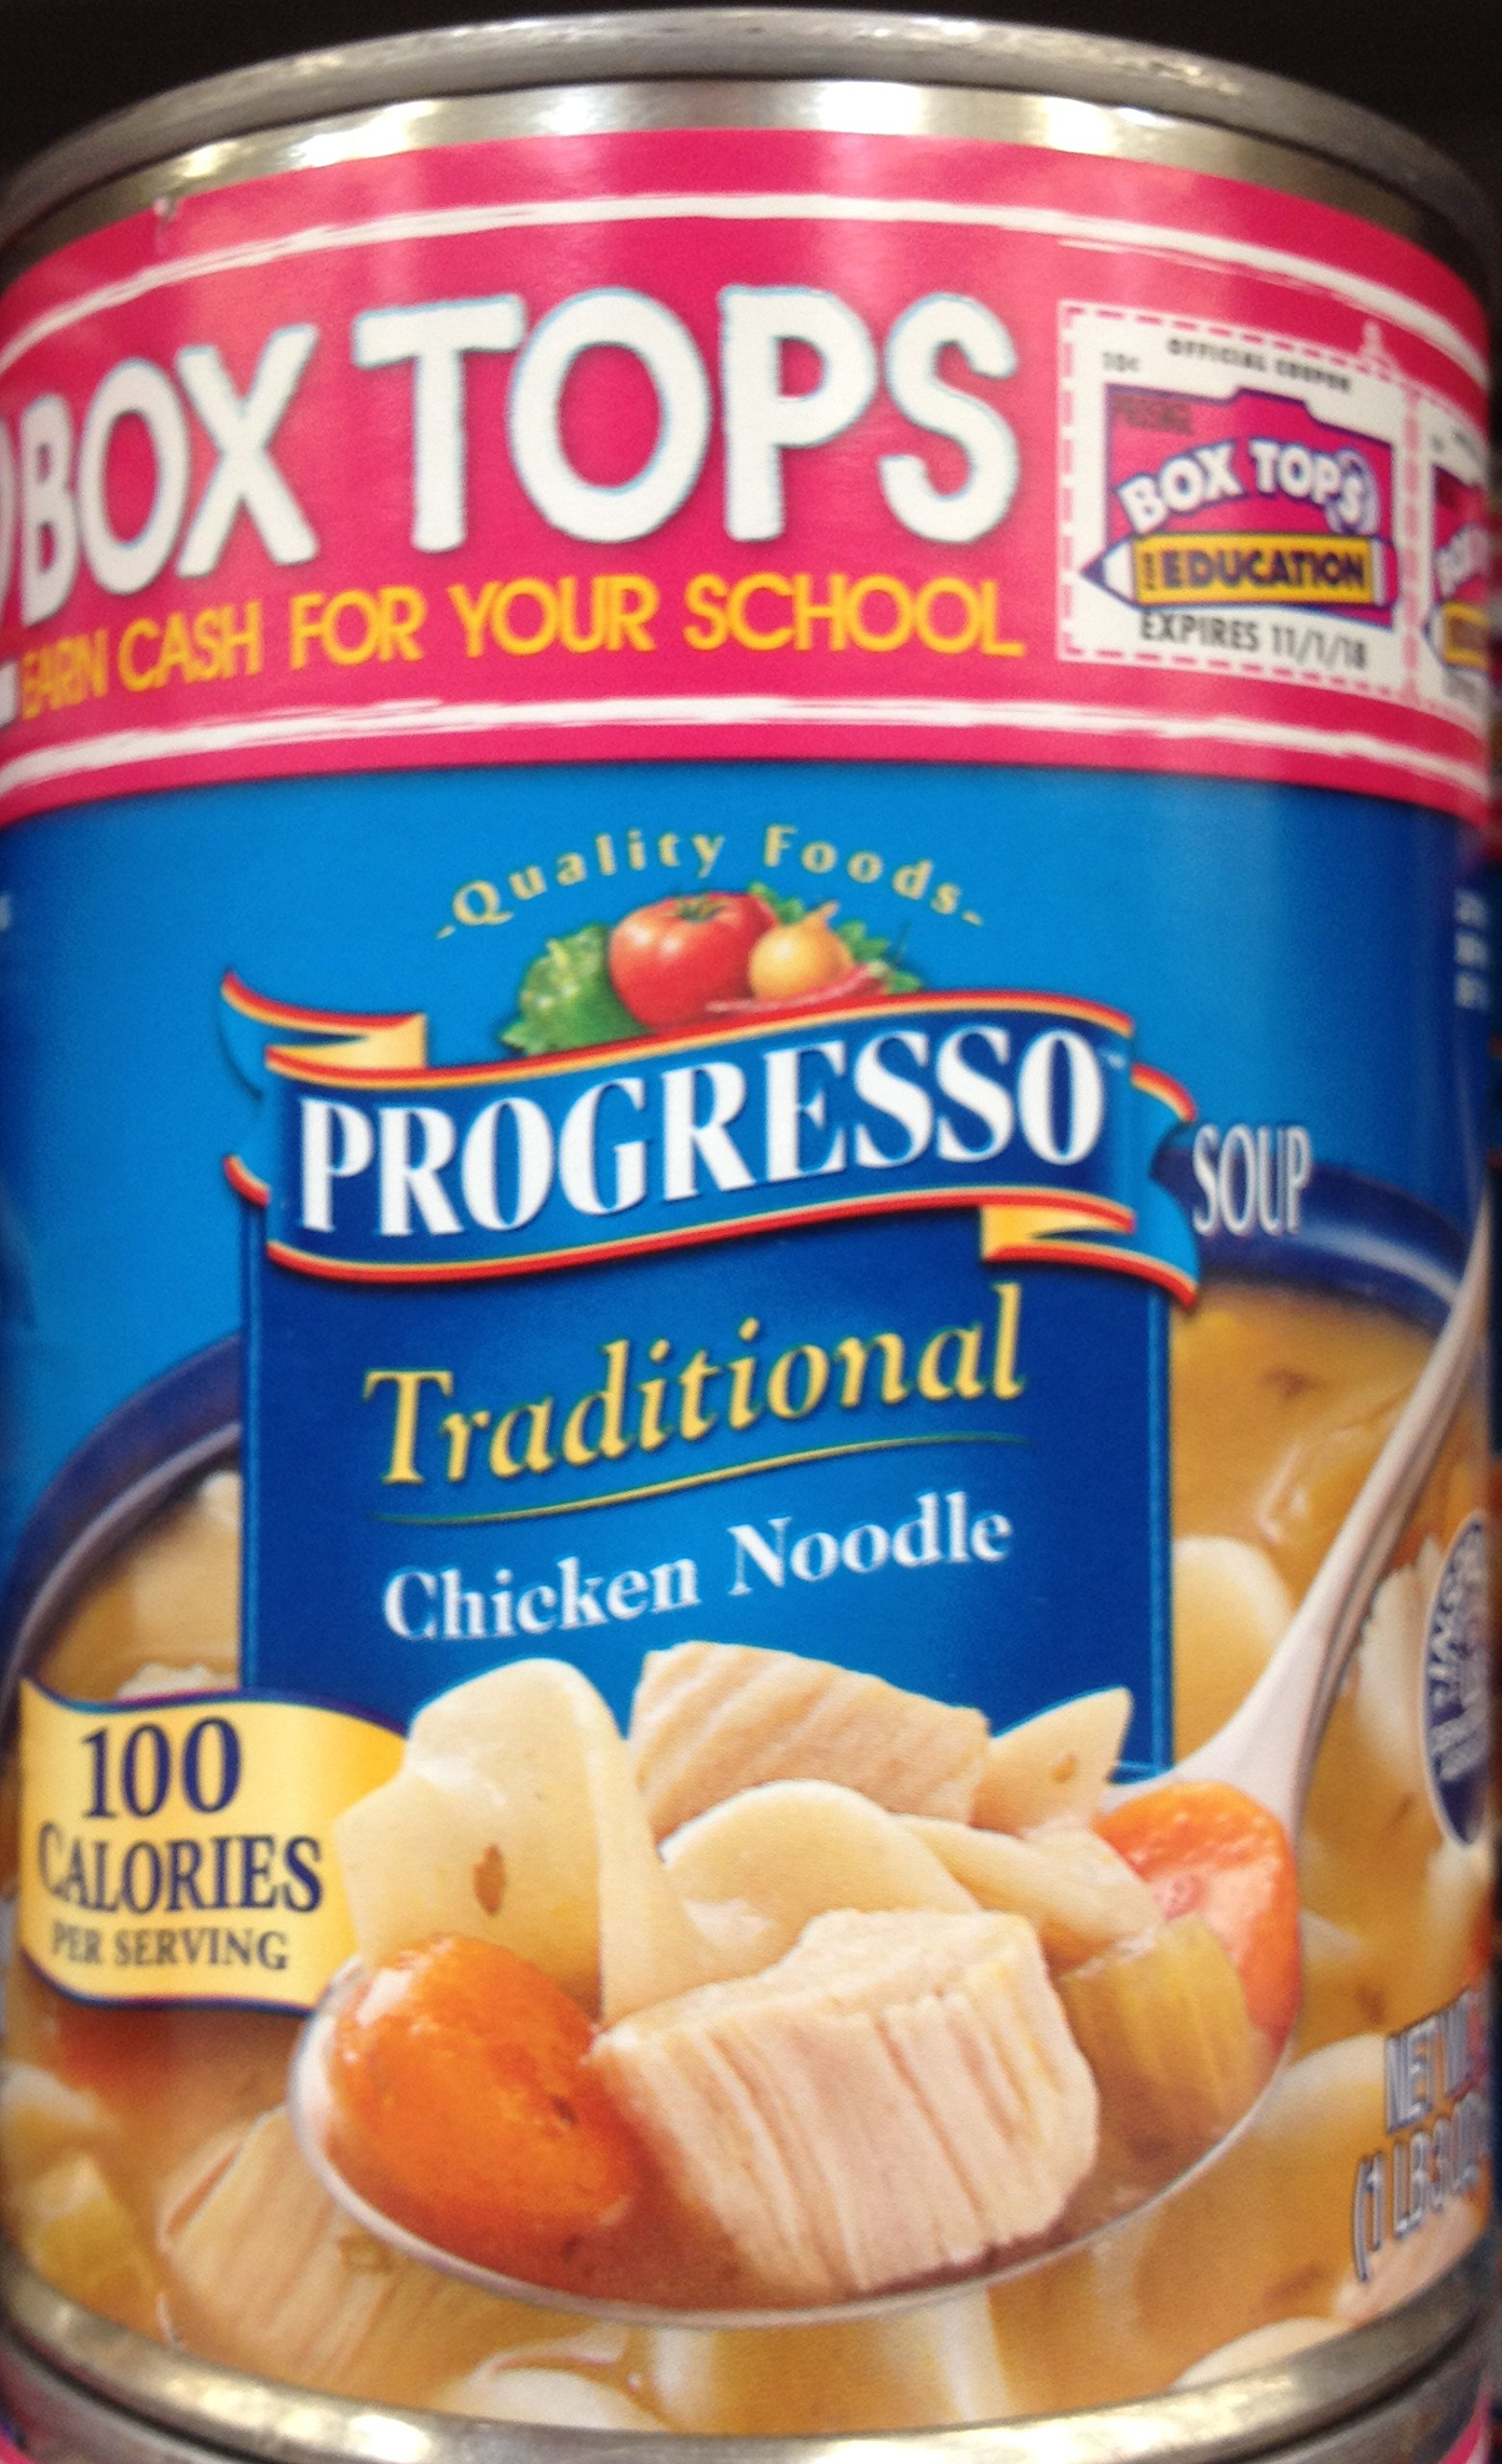 Progresso Traditional Chicken Noodle Soup 19oz Can (Pack of 8)